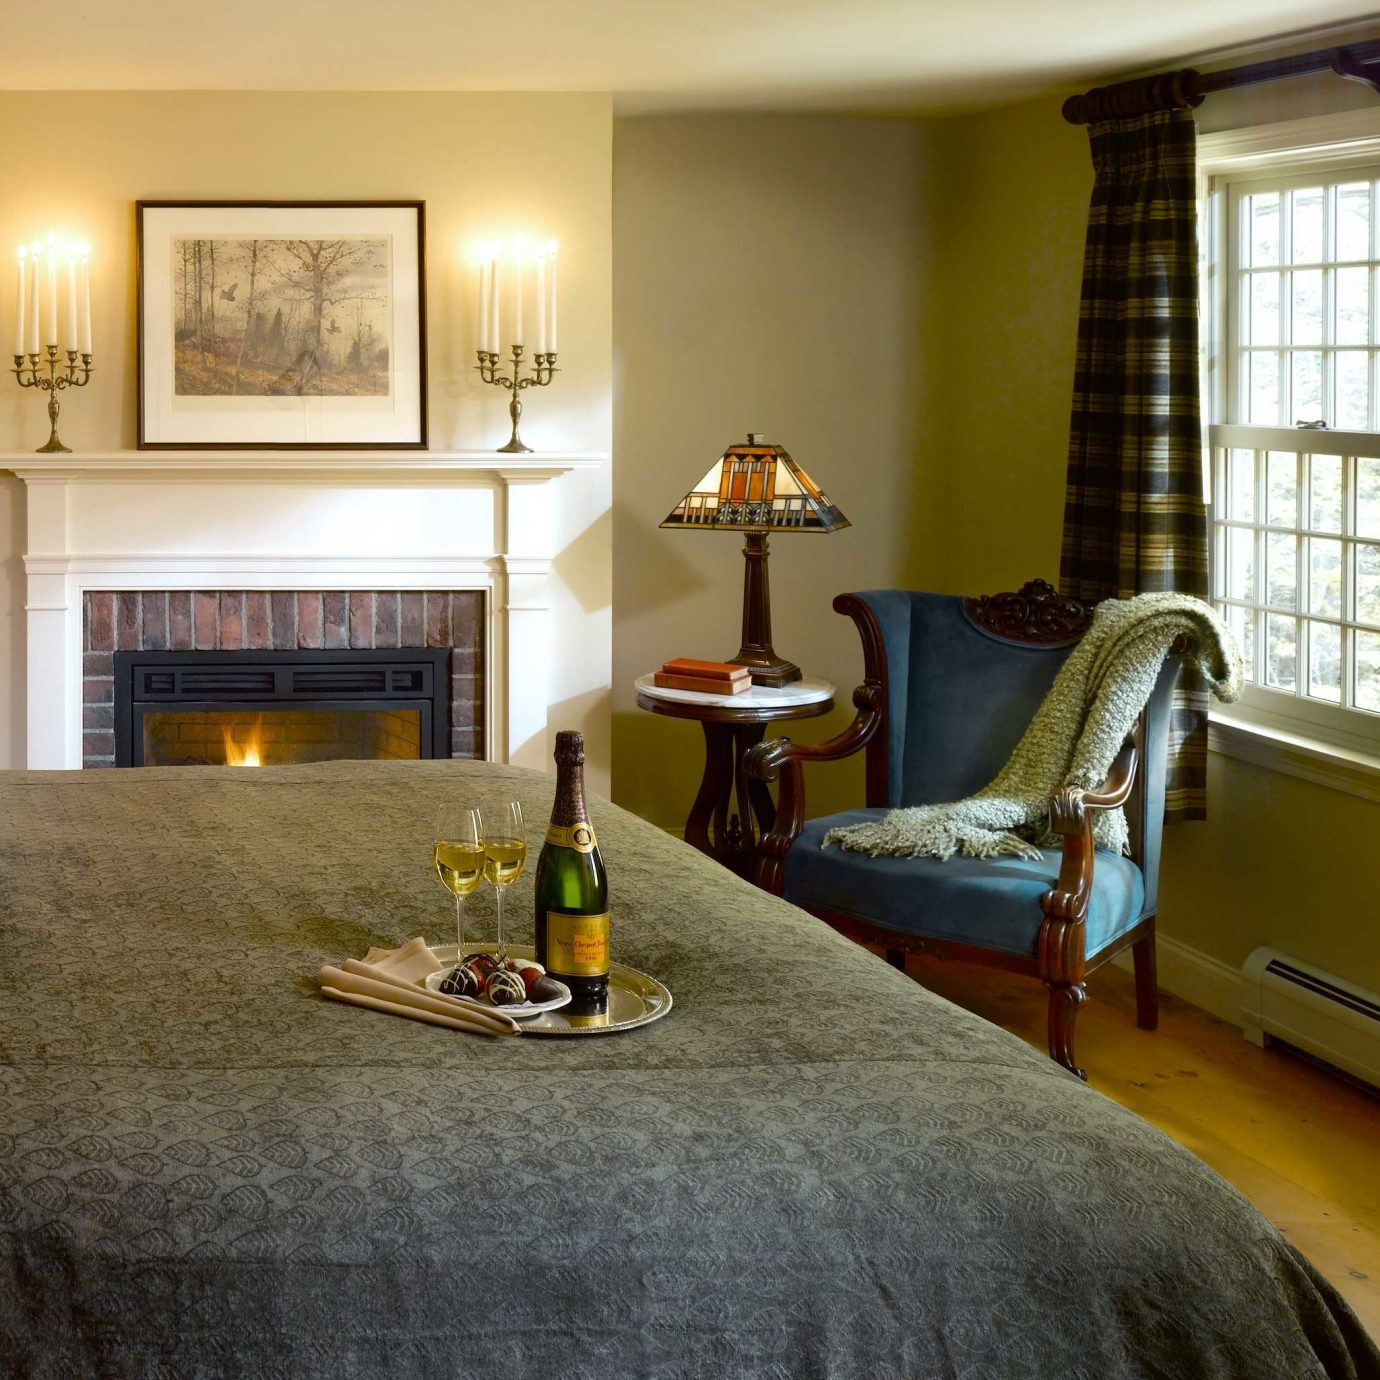 Bedroom Classic Country Fireplace Inn Suite property home living room hardwood cottage wood flooring farmhouse mansion flooring